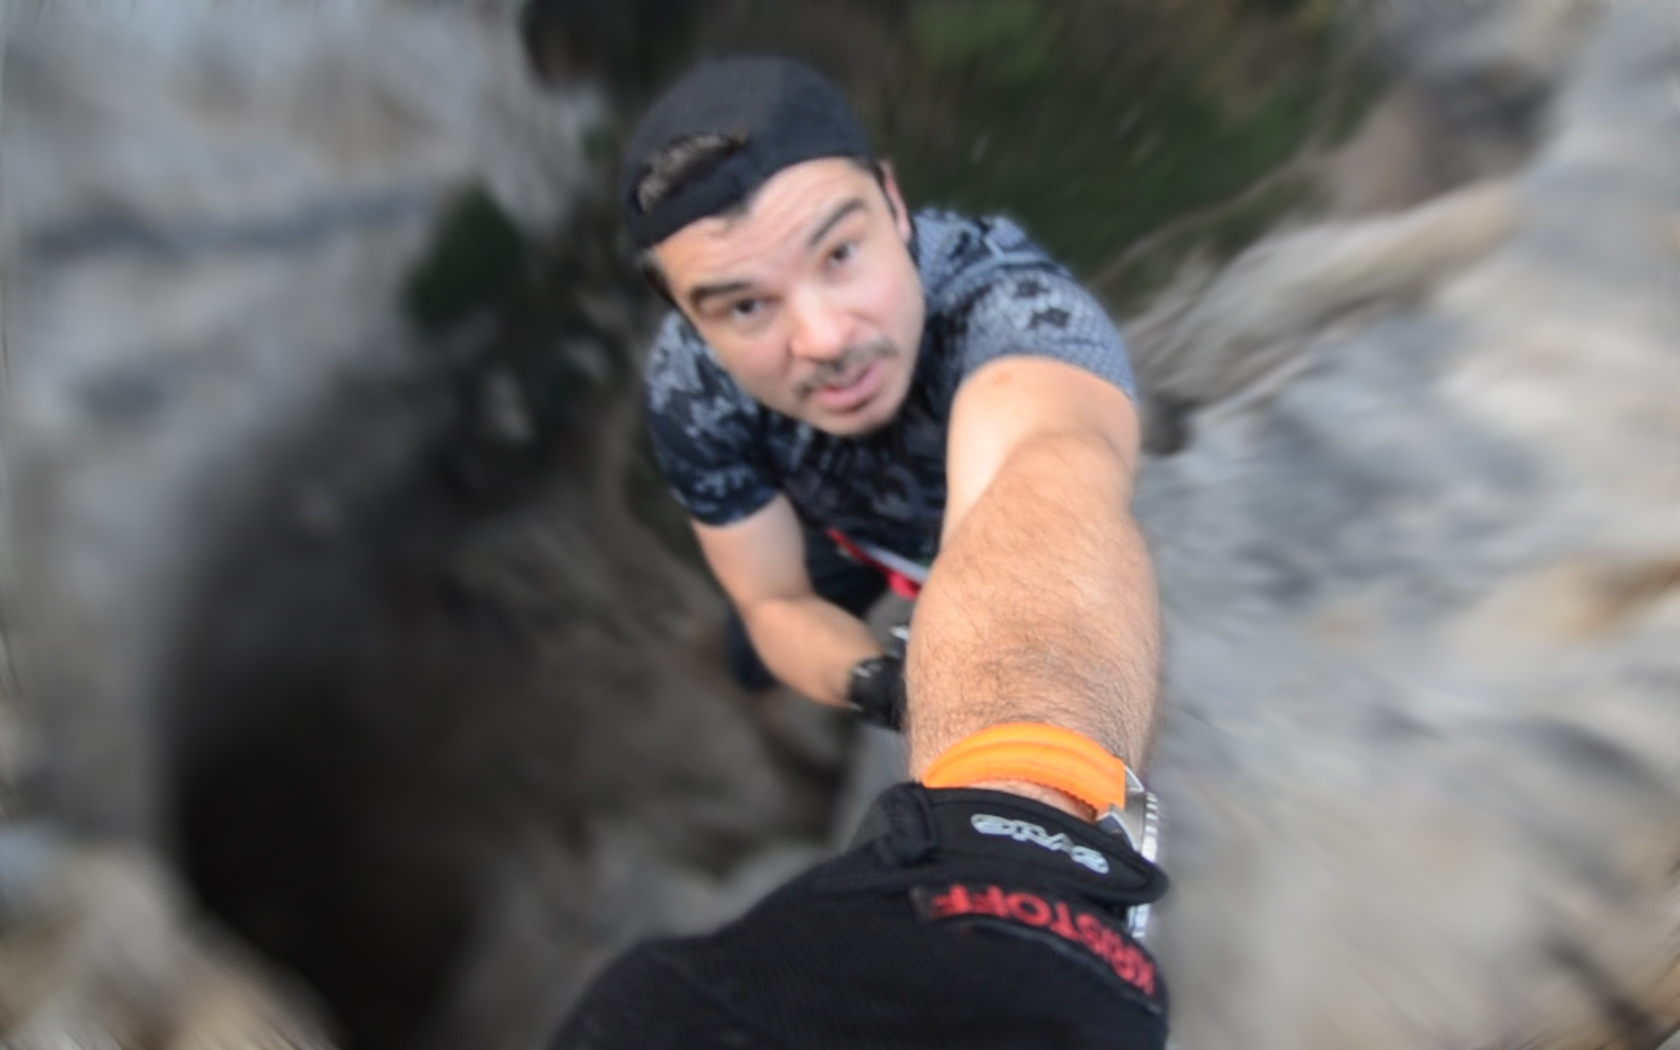 Training and Free Solo climbing